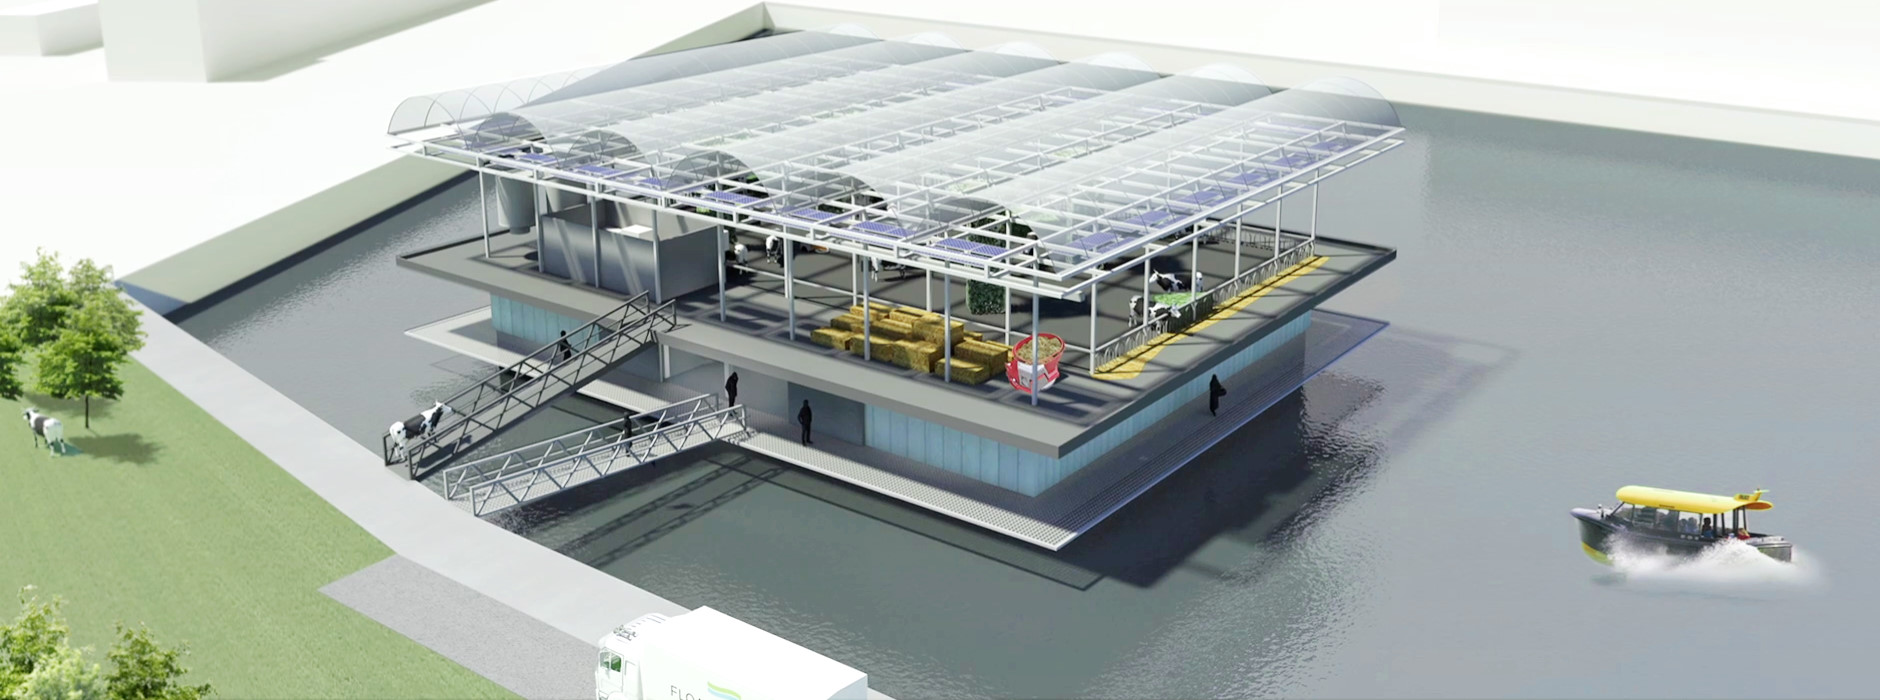 Floating farm in Rotterdam